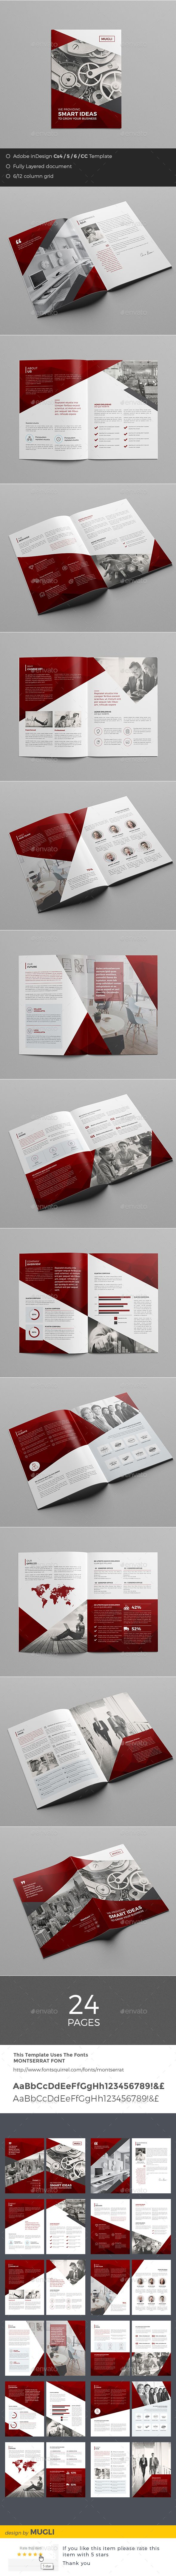 Corporate Brochure Template INDD, Vector AI. Download here: http://graphicriver.net/item/corporate-brochure/16488096?ref=ksioks